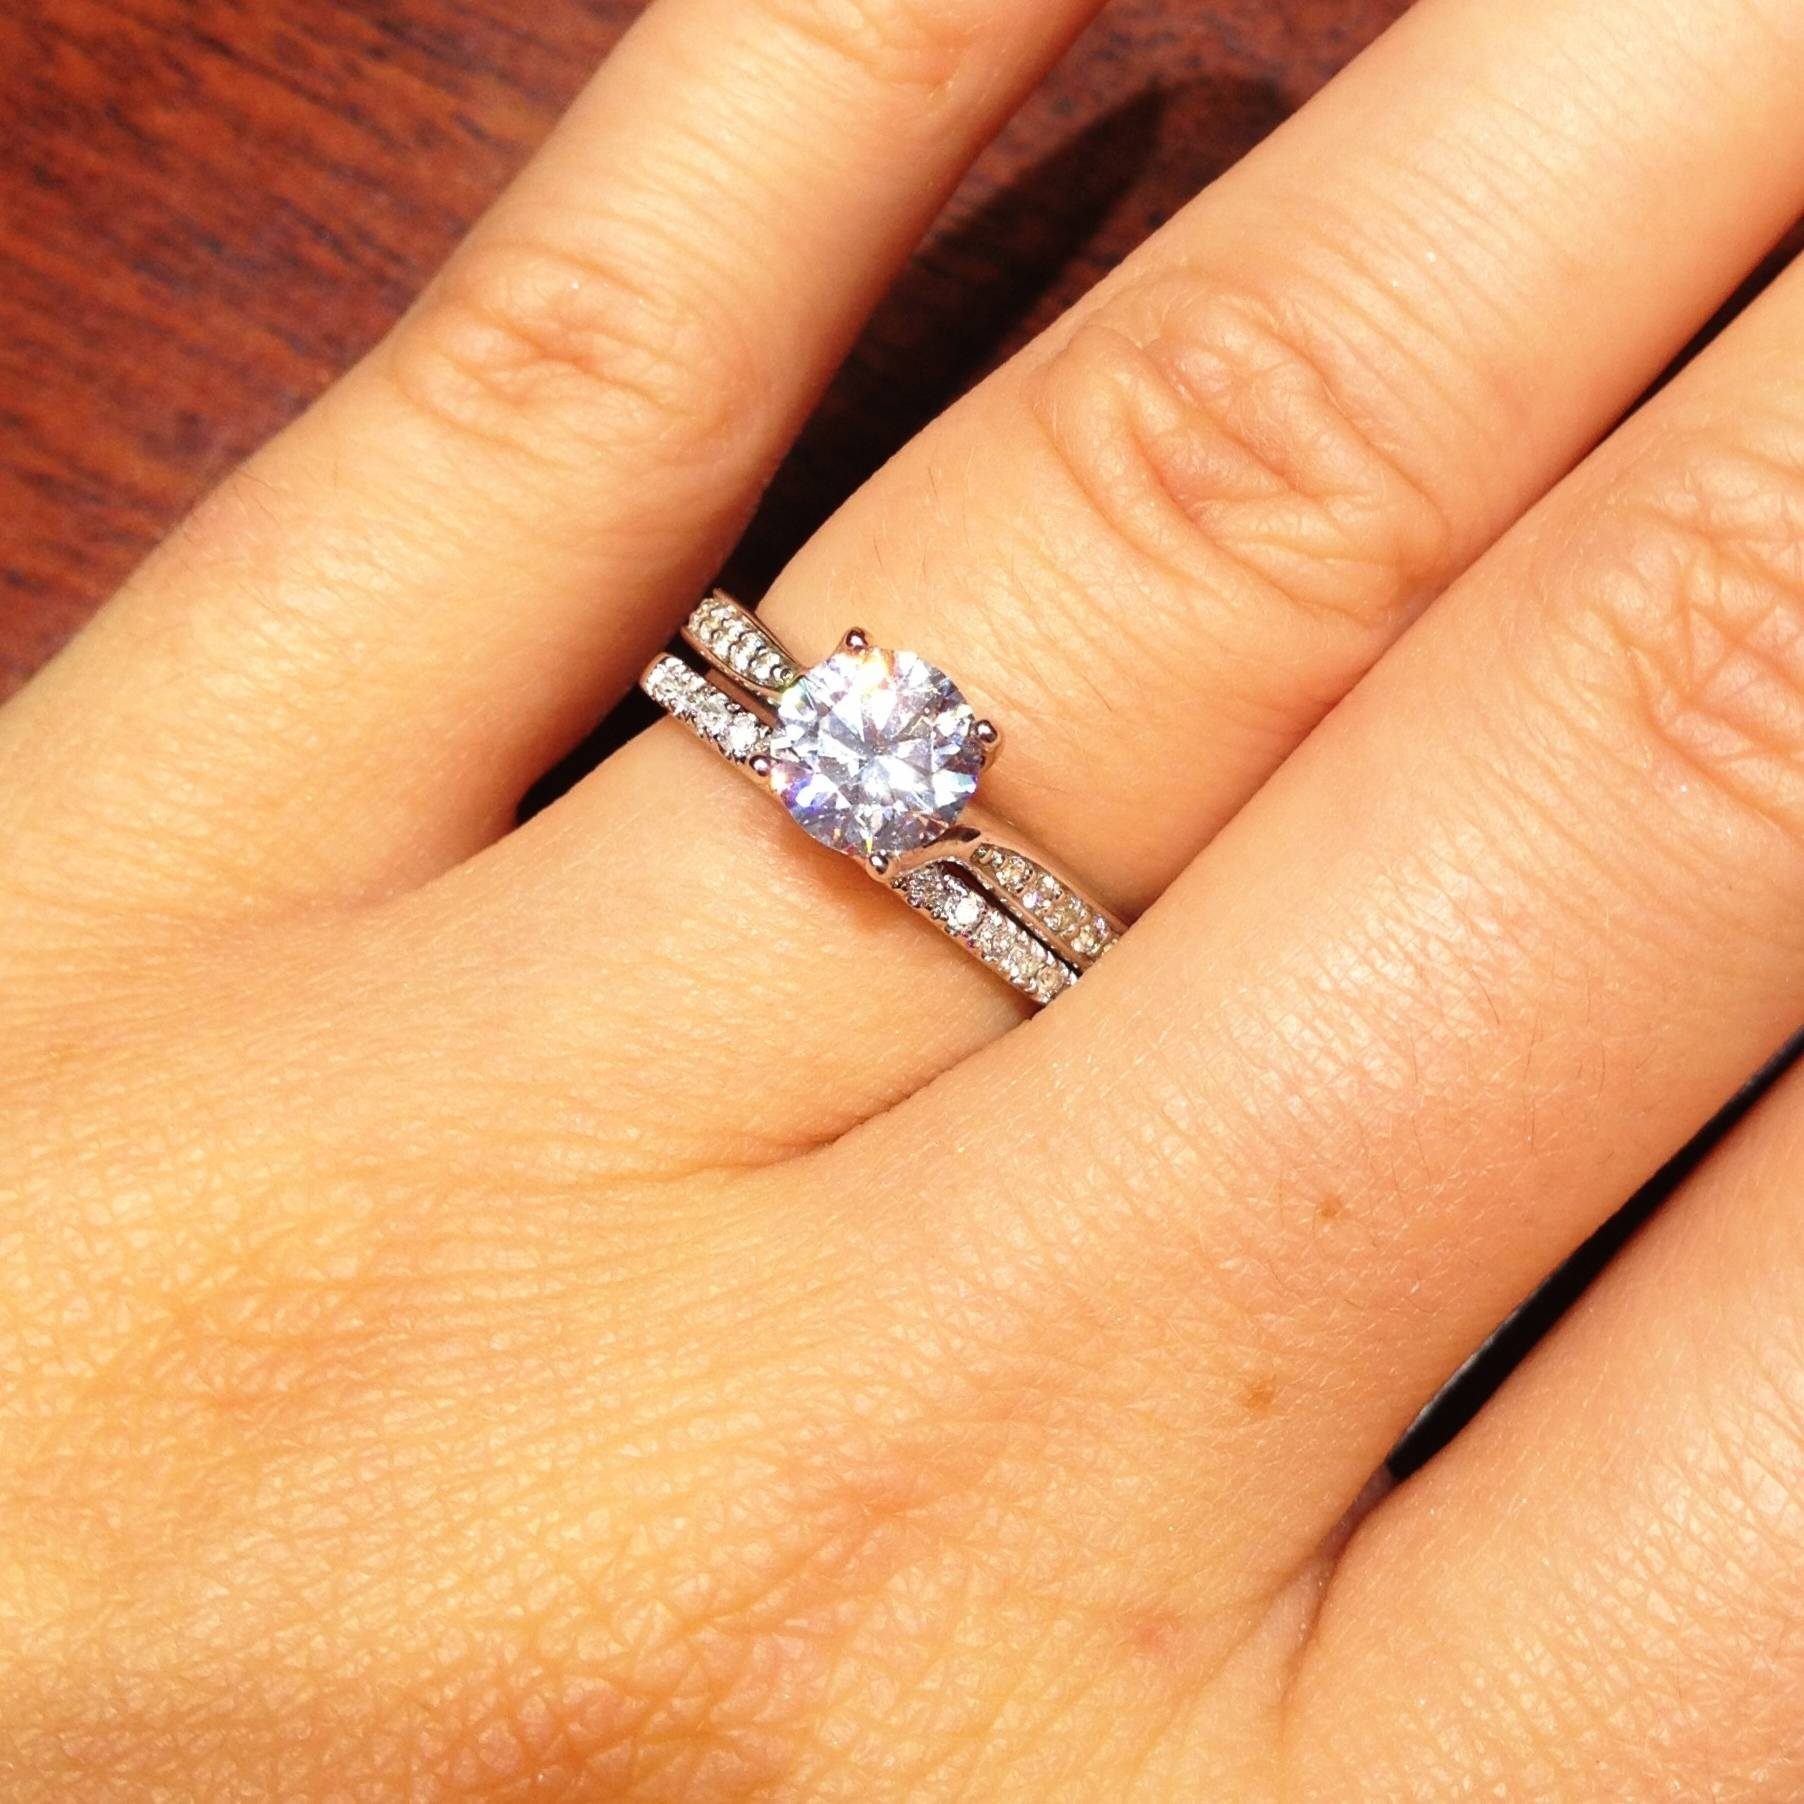 Engagement Rings : Amazing Solitaire Engagement Rings With Diamond Within Skinny Diamond Wedding Bands (View 13 of 15)